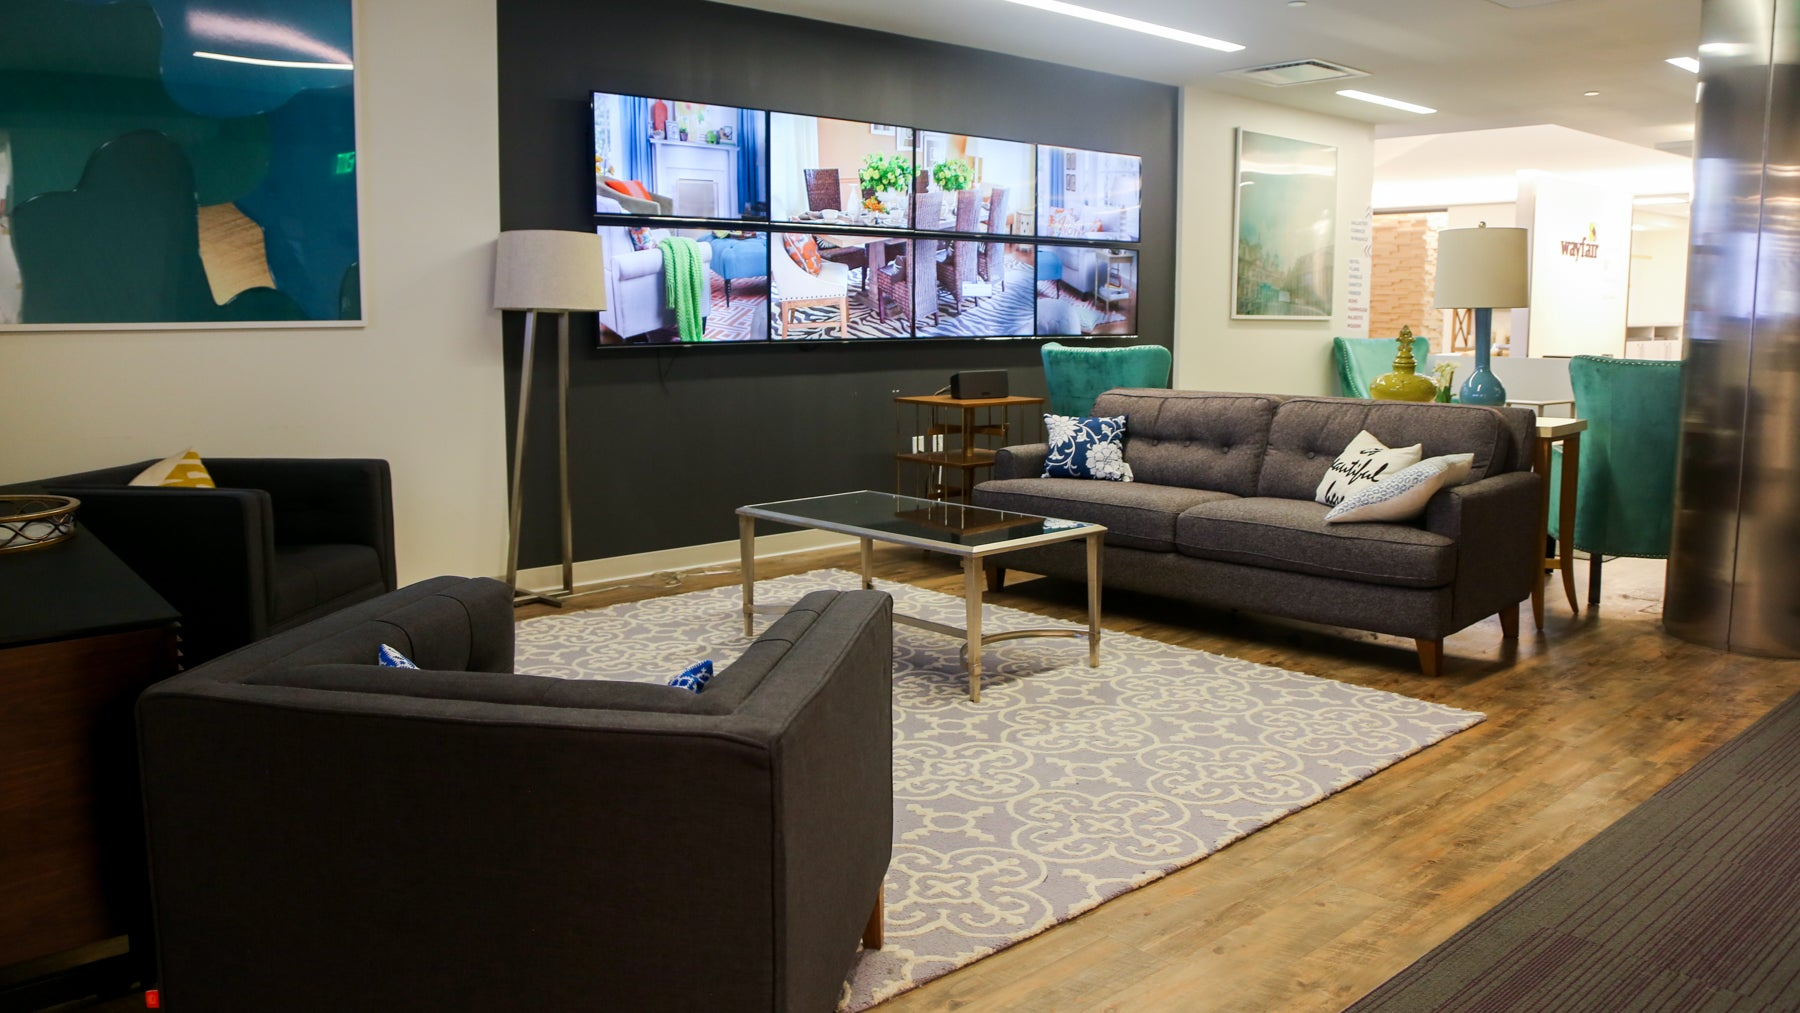 Wayfair is hiring for hundreds of positions.